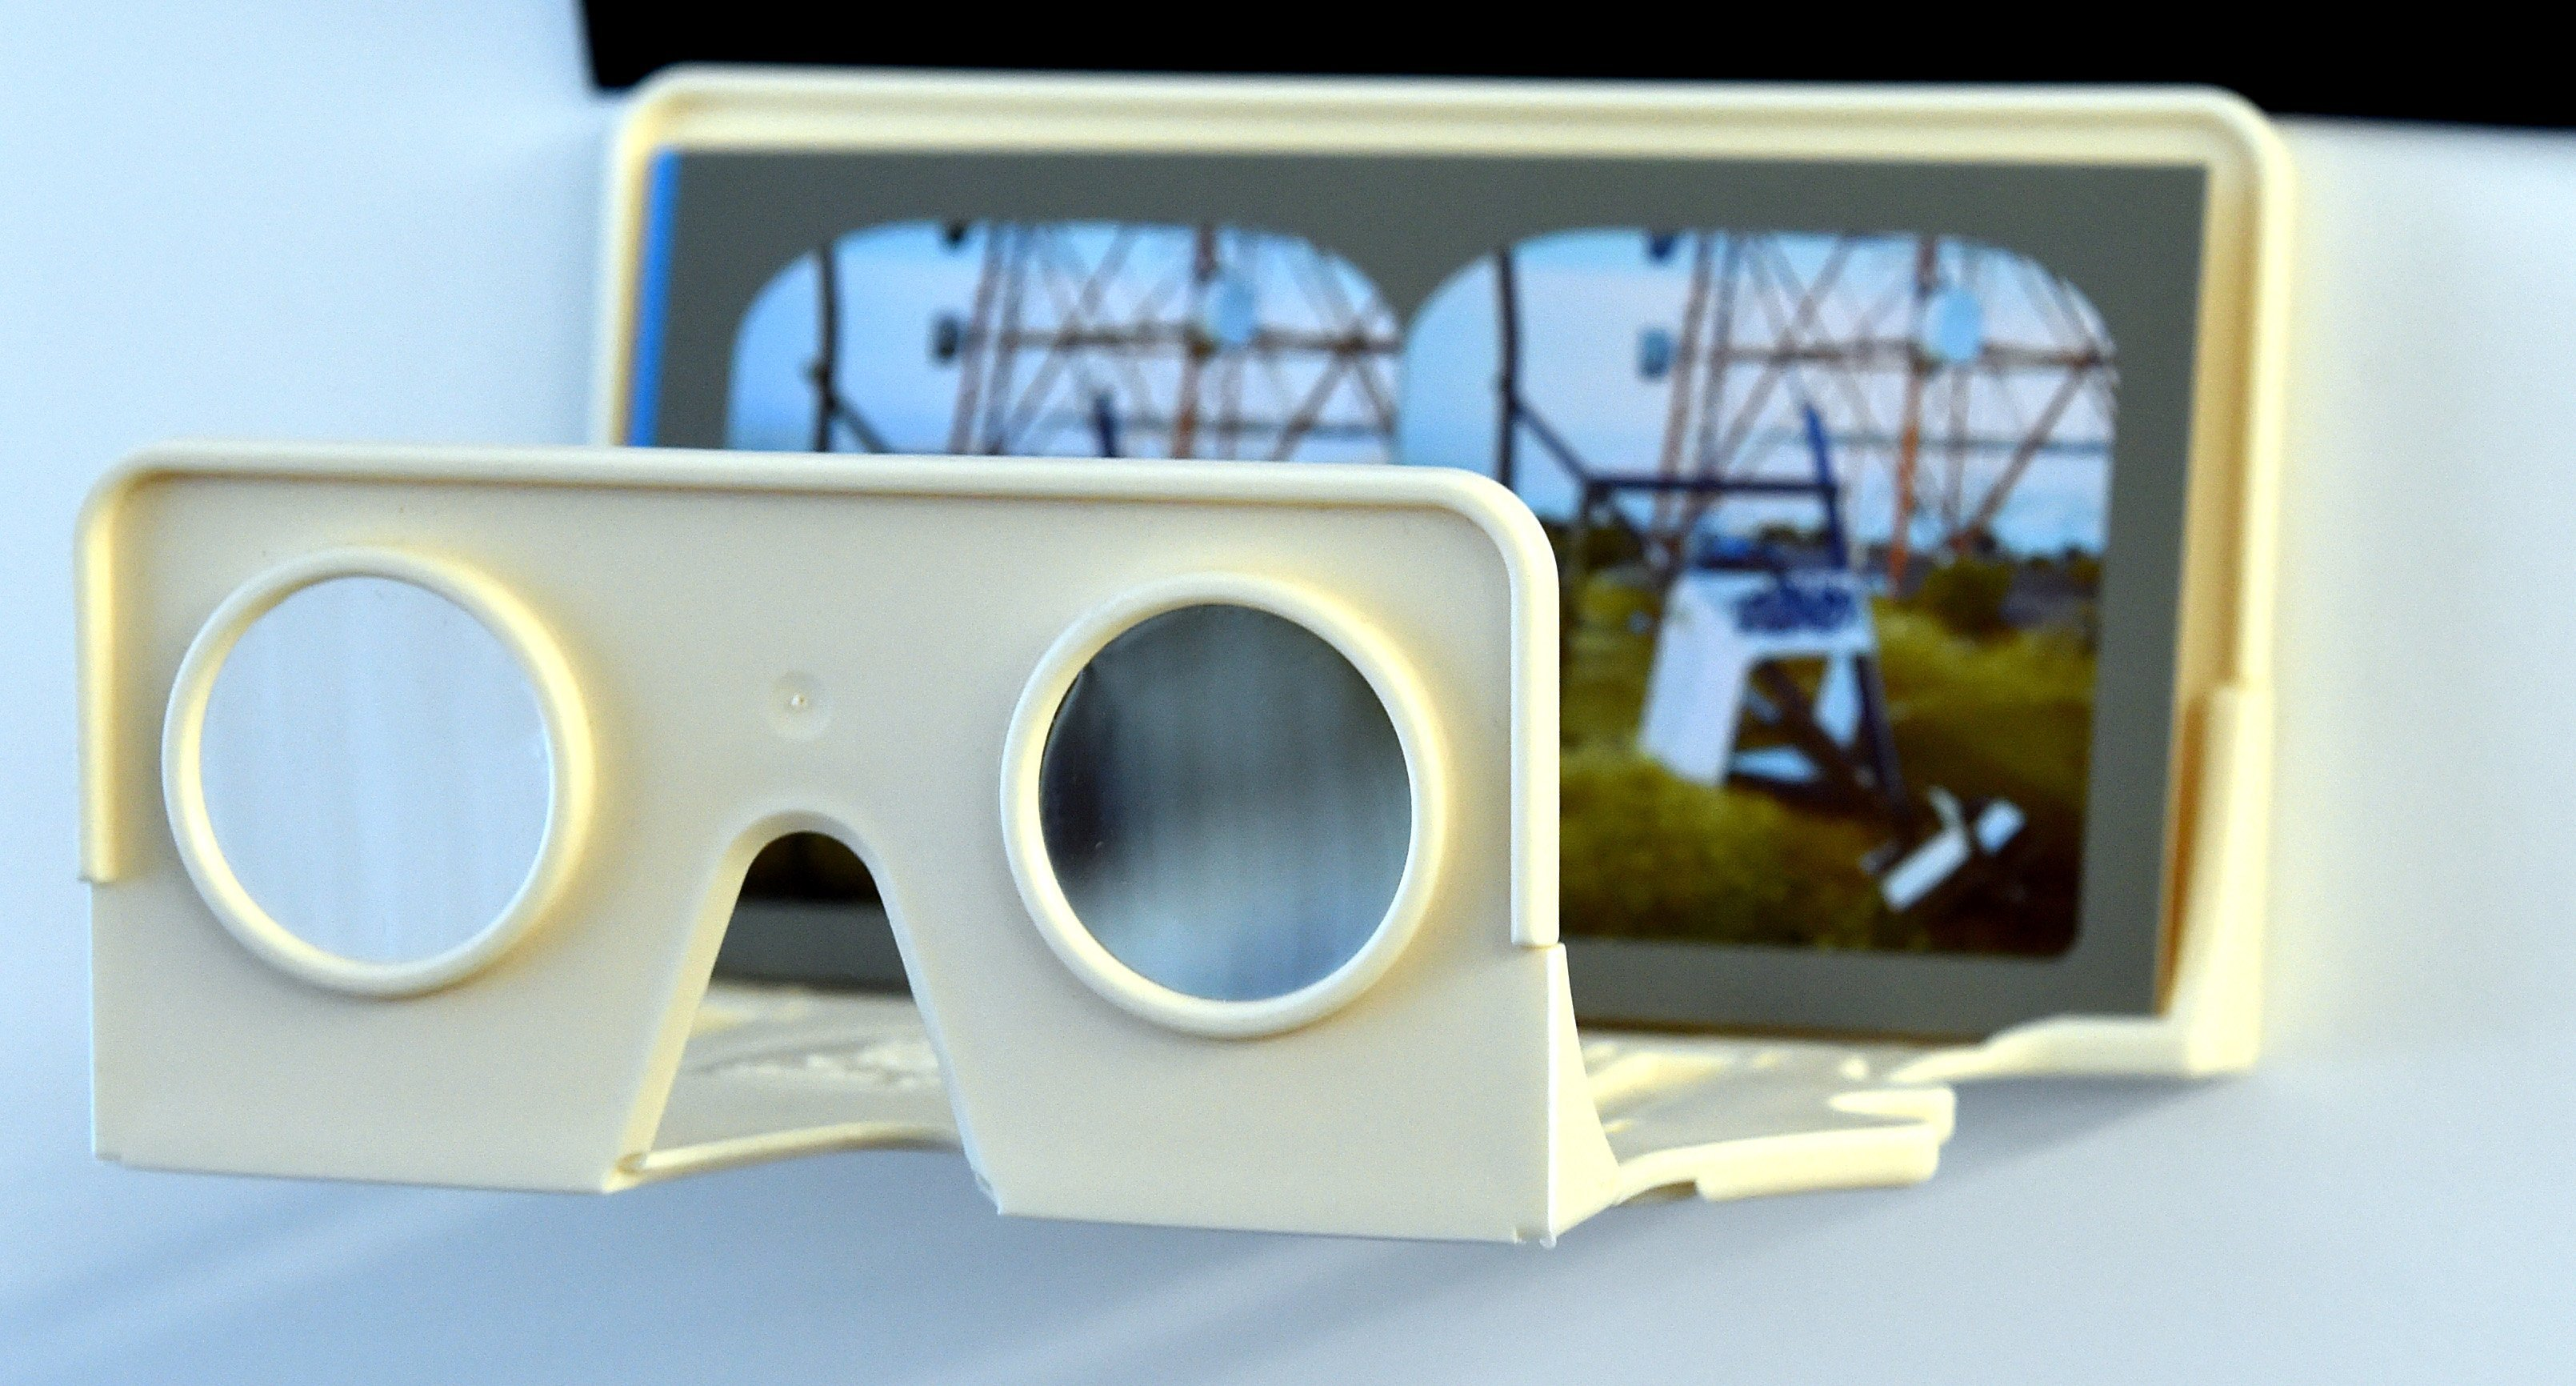 A trig station Reweti photographed using a stereoscopic camera, that is viewed through glasses.